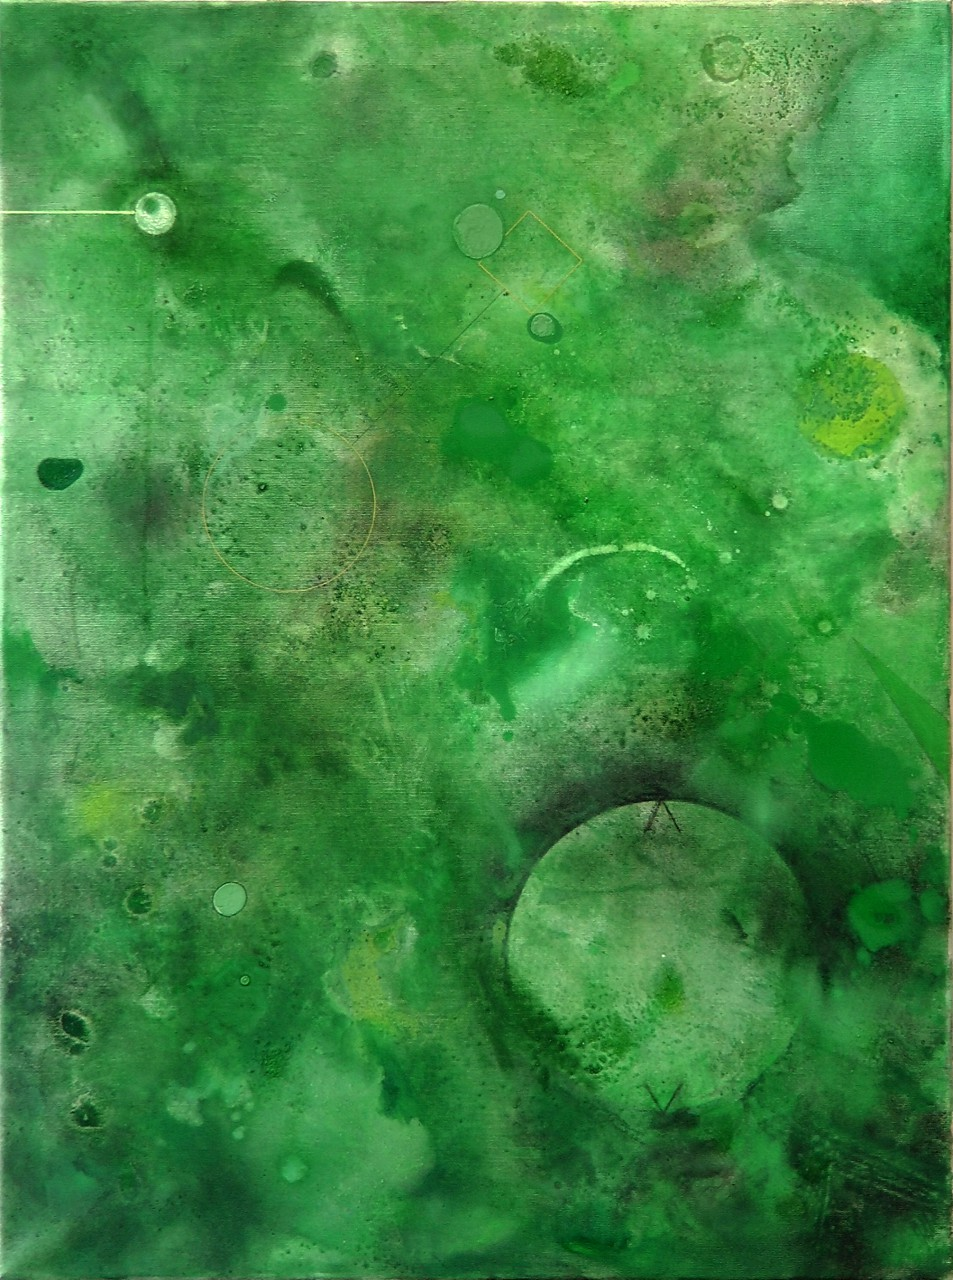 Tabula Smaragdina, mixed media on canvas, 90x70 cm, 2015